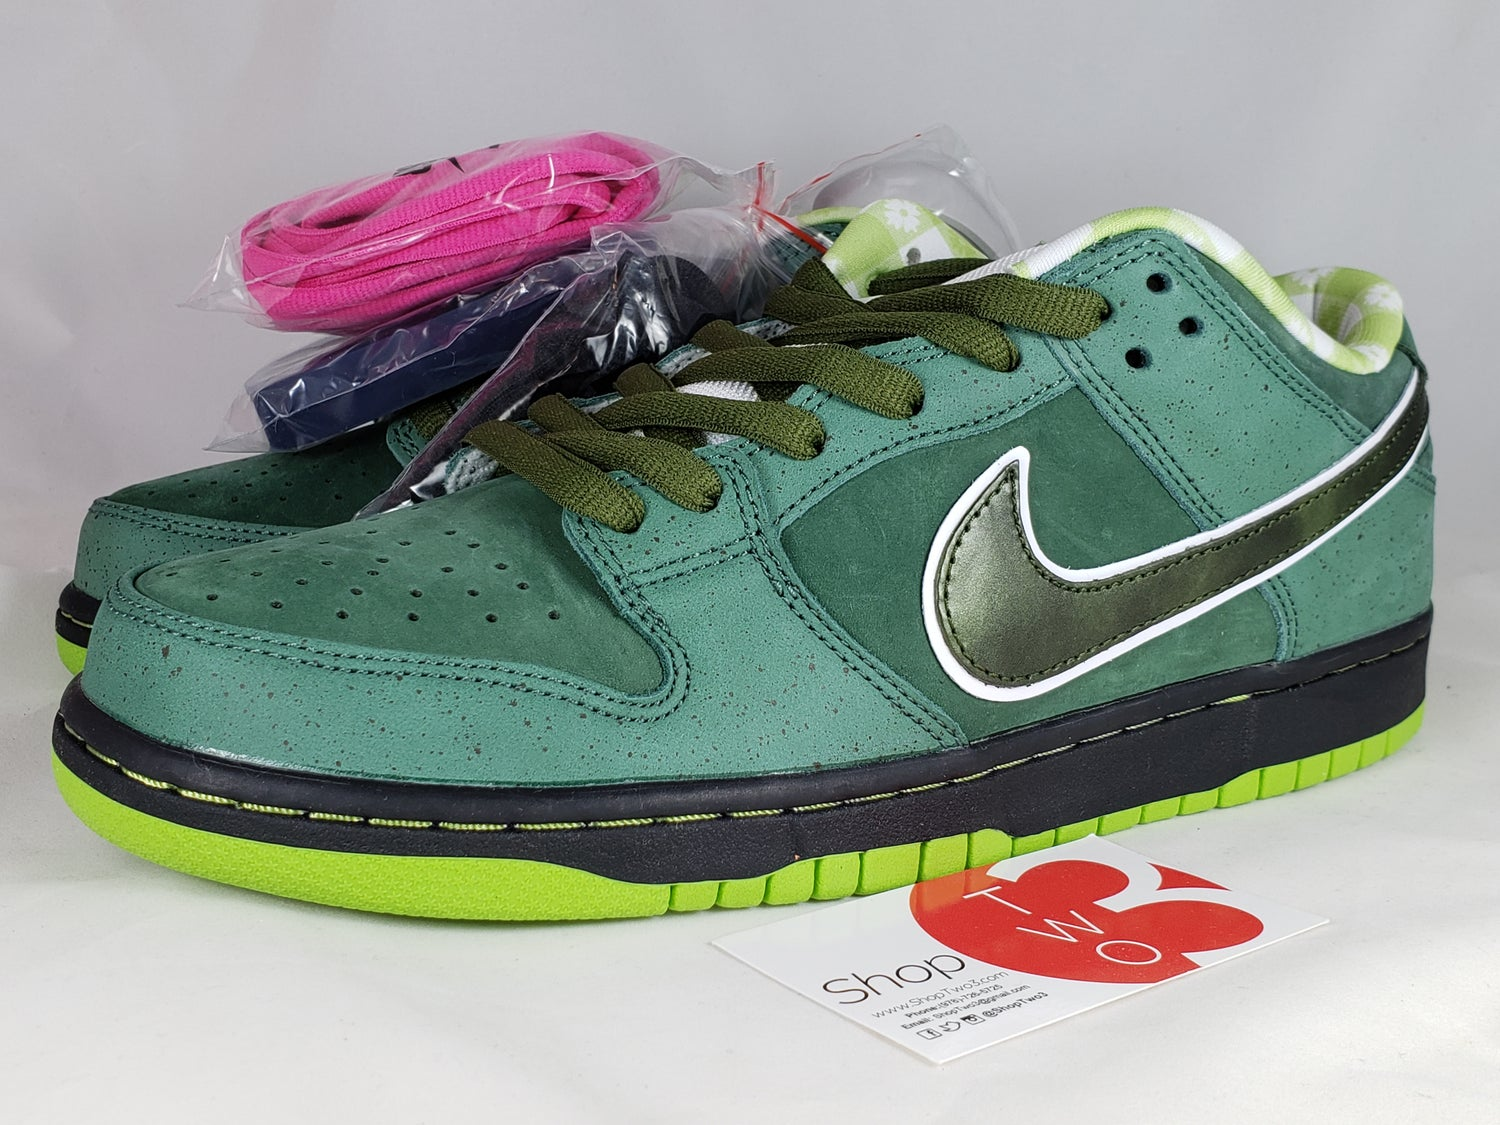 """Image of Nike x Concepts SB Dunk Low """"Green Lobsters"""""""